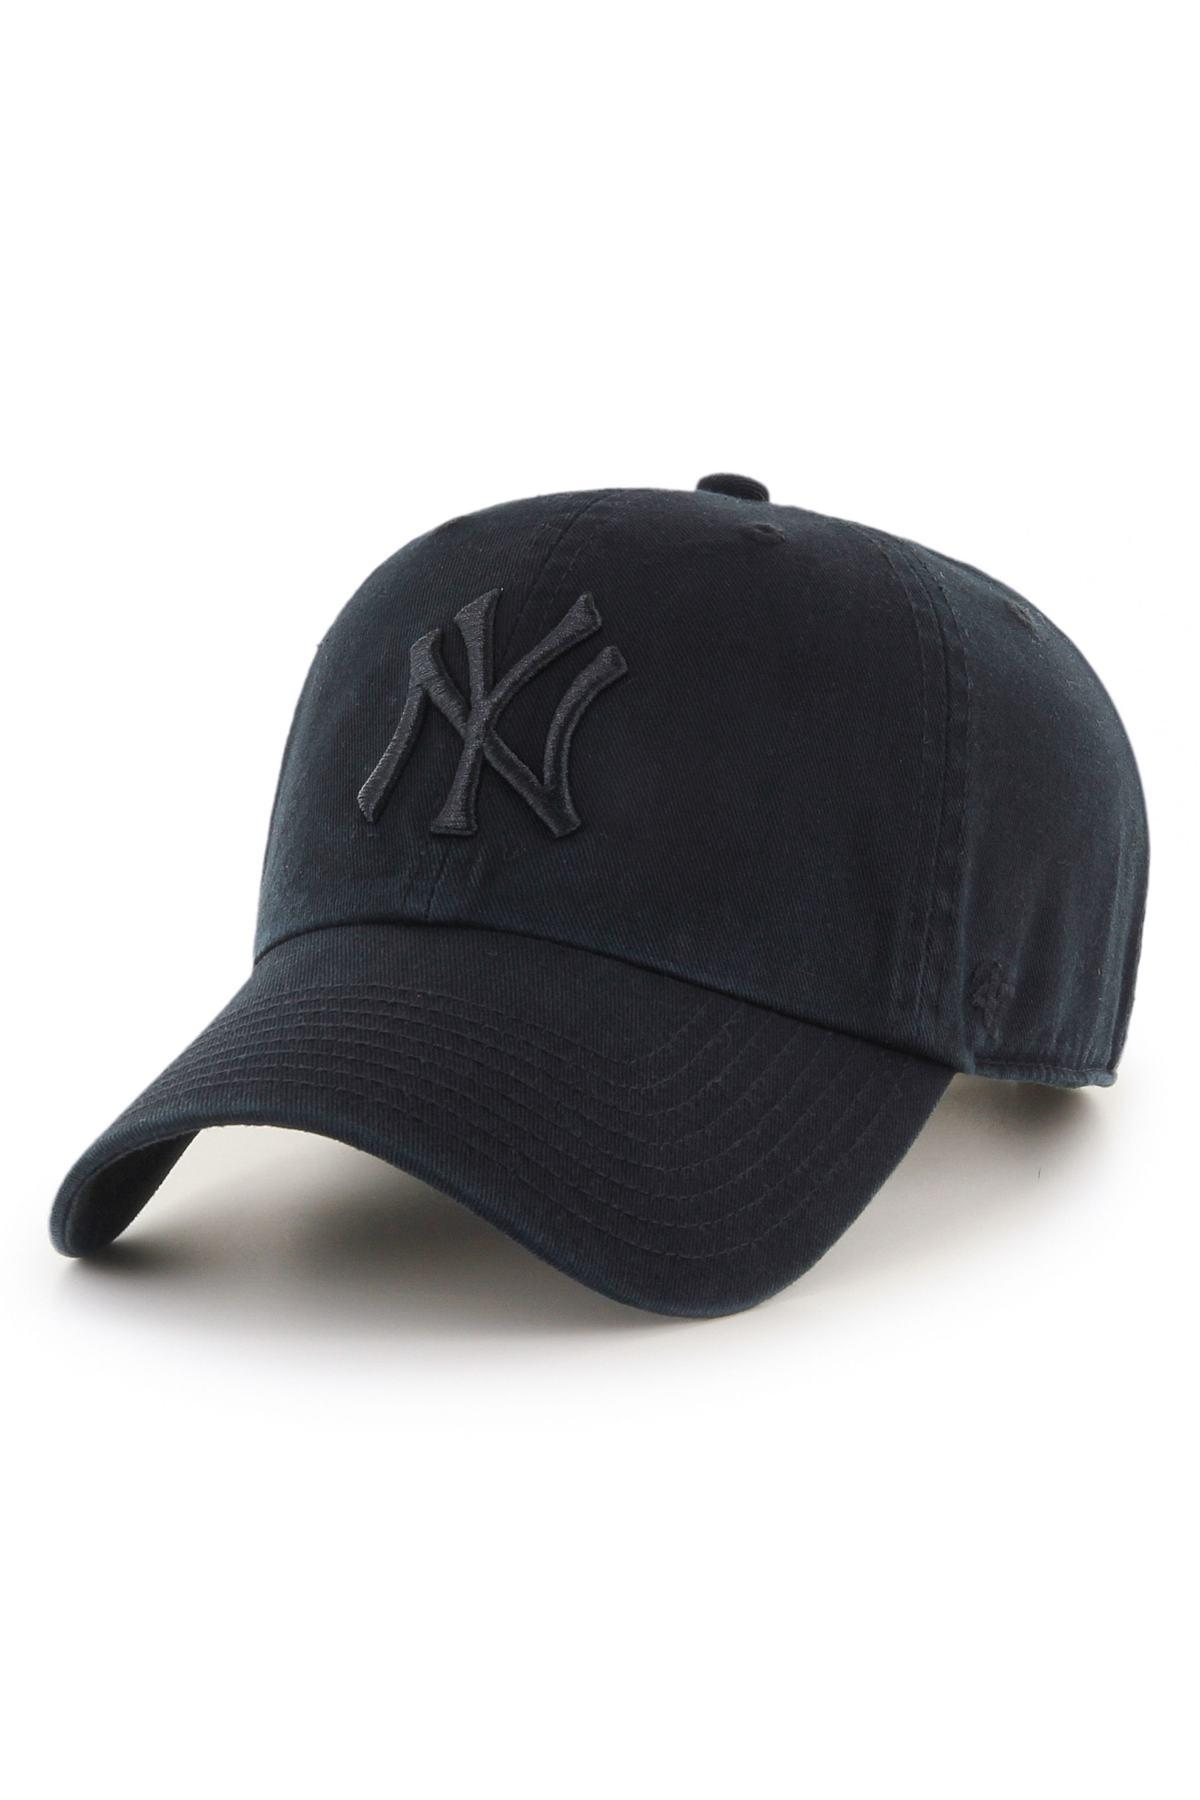 low price detailed look casual shoes promo code for new york yankees 47 mlb lagoon clean up cap 9e1a3 8b74a